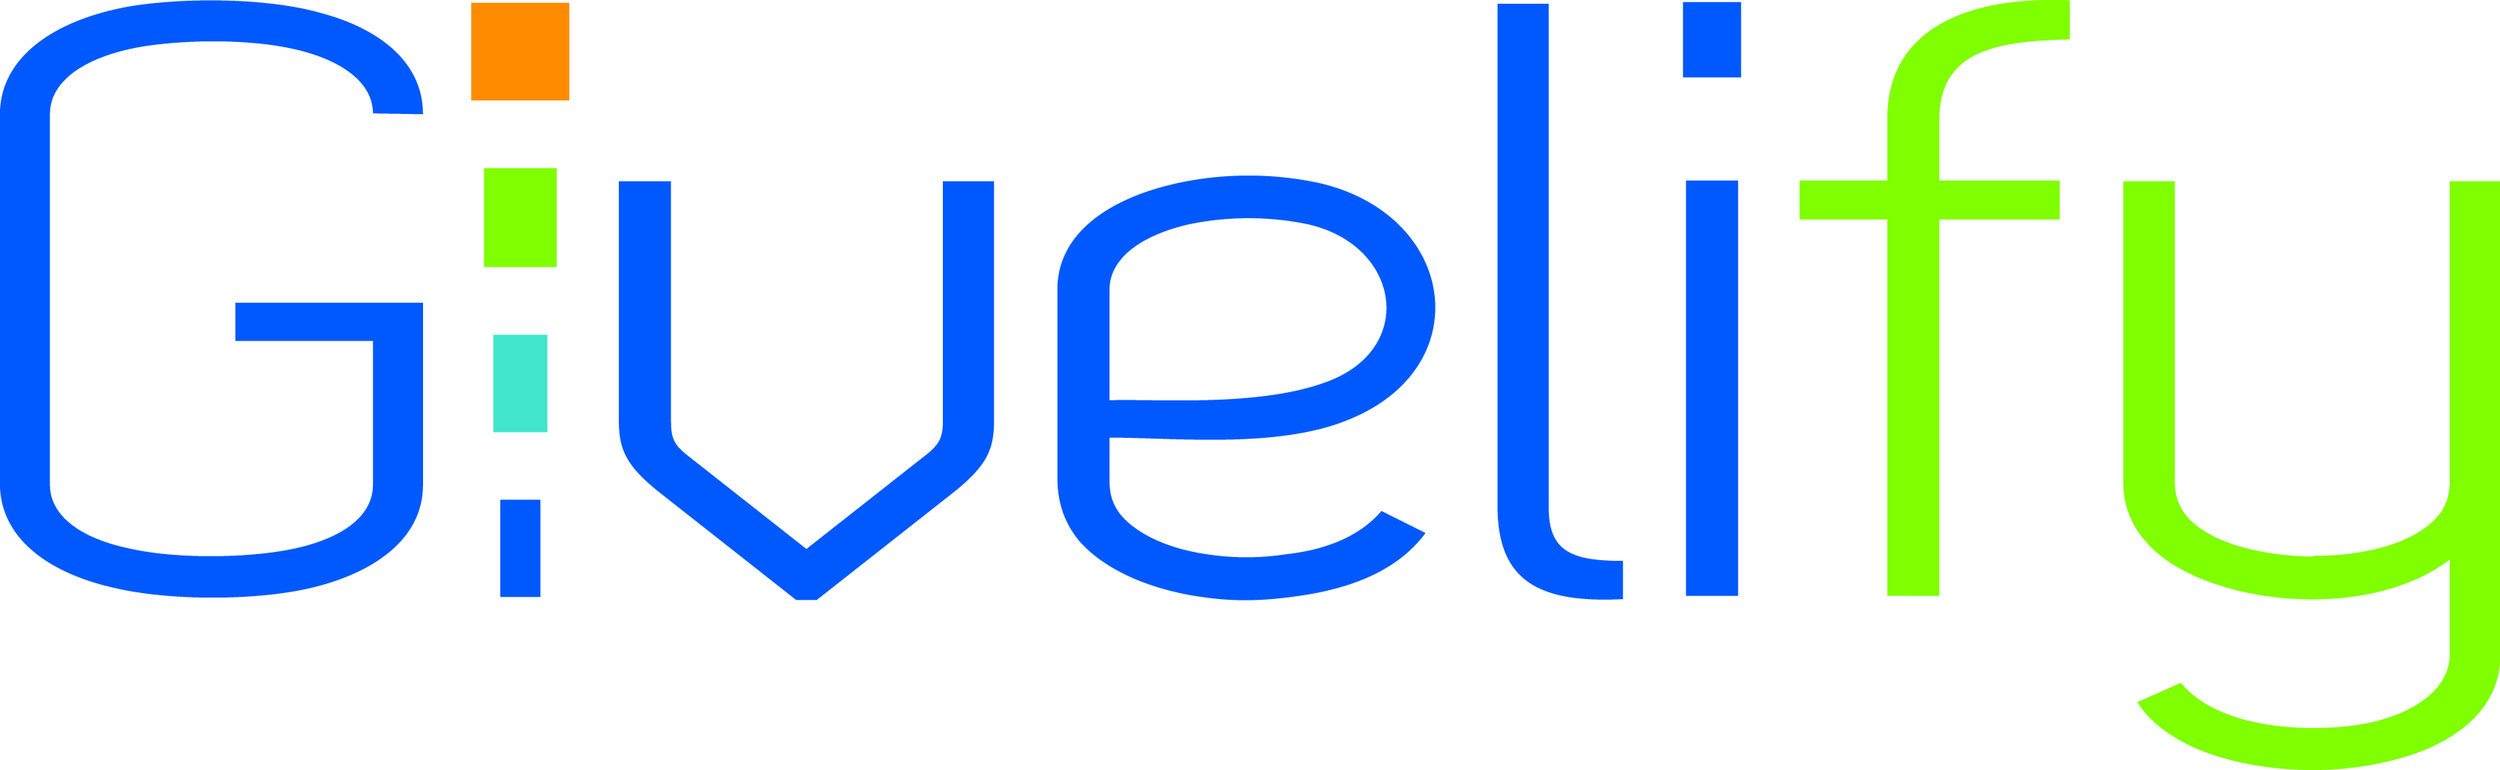 Givelify_Logo_Color-jpg-300dpi-01.jpg